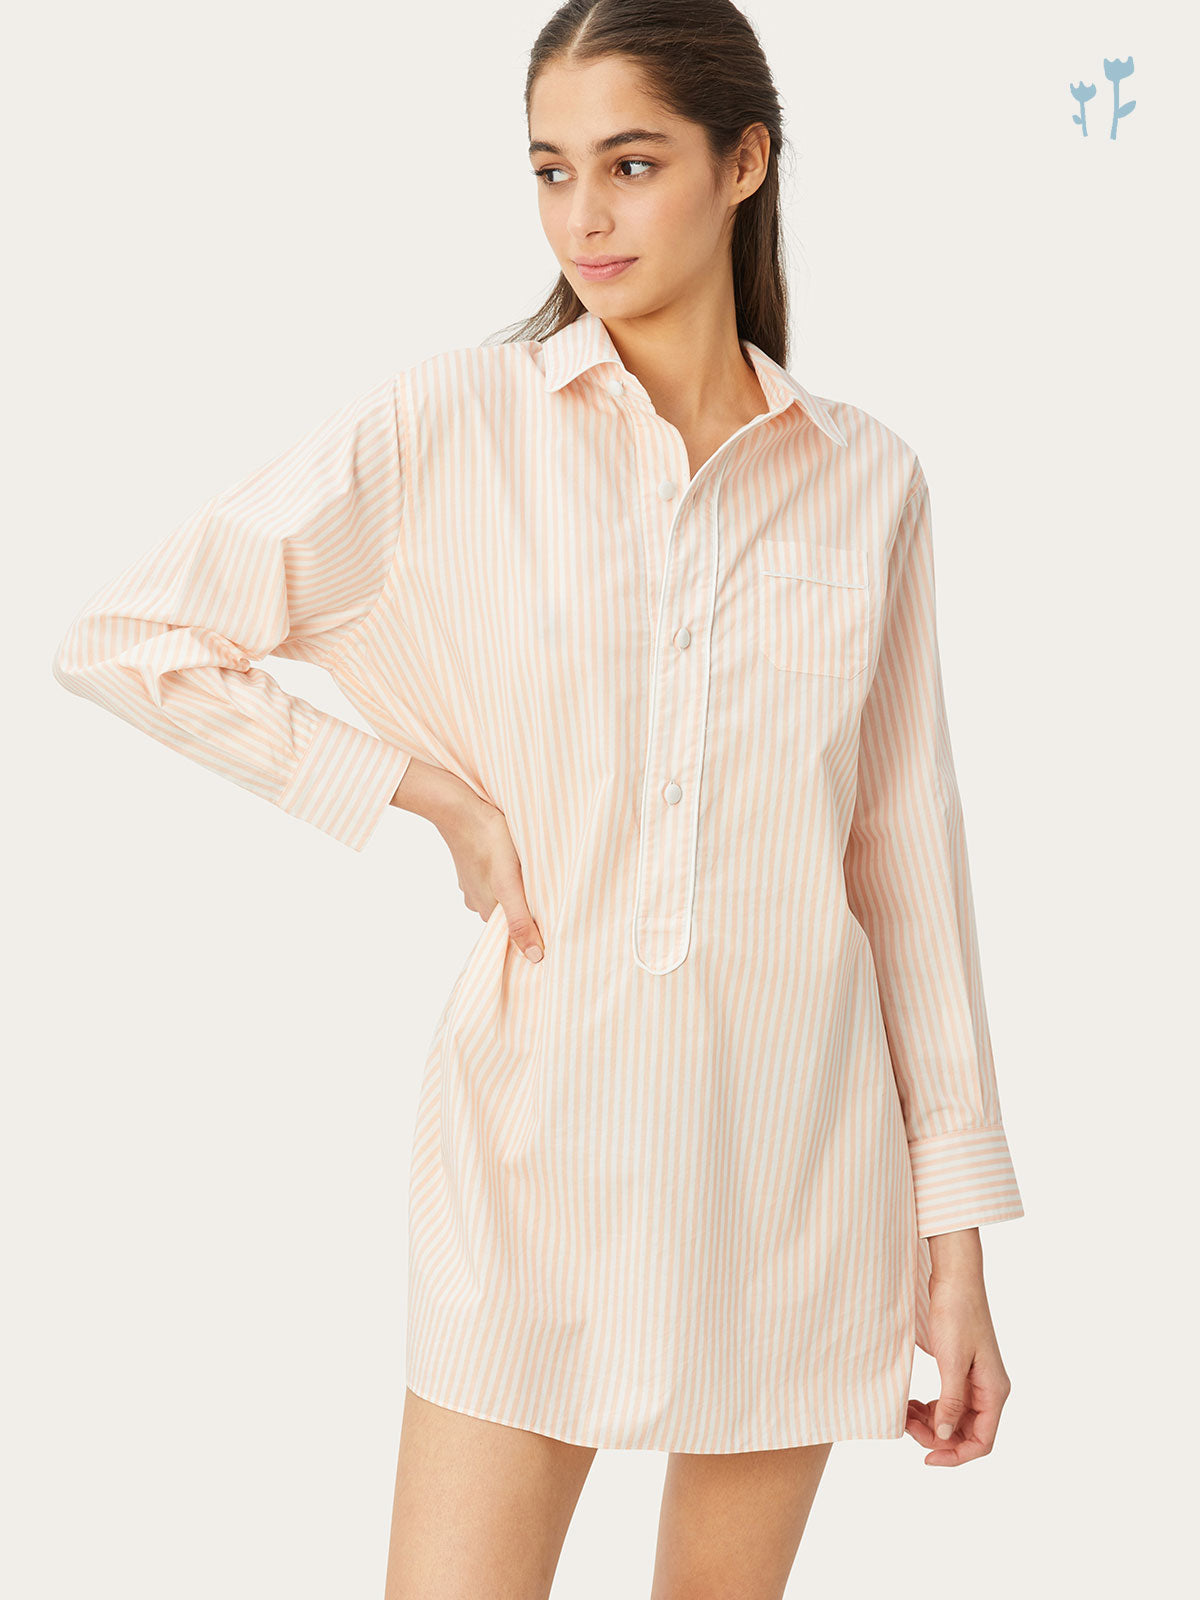 Linnet Night Shirt in Petal Stripe By Morgan Lane